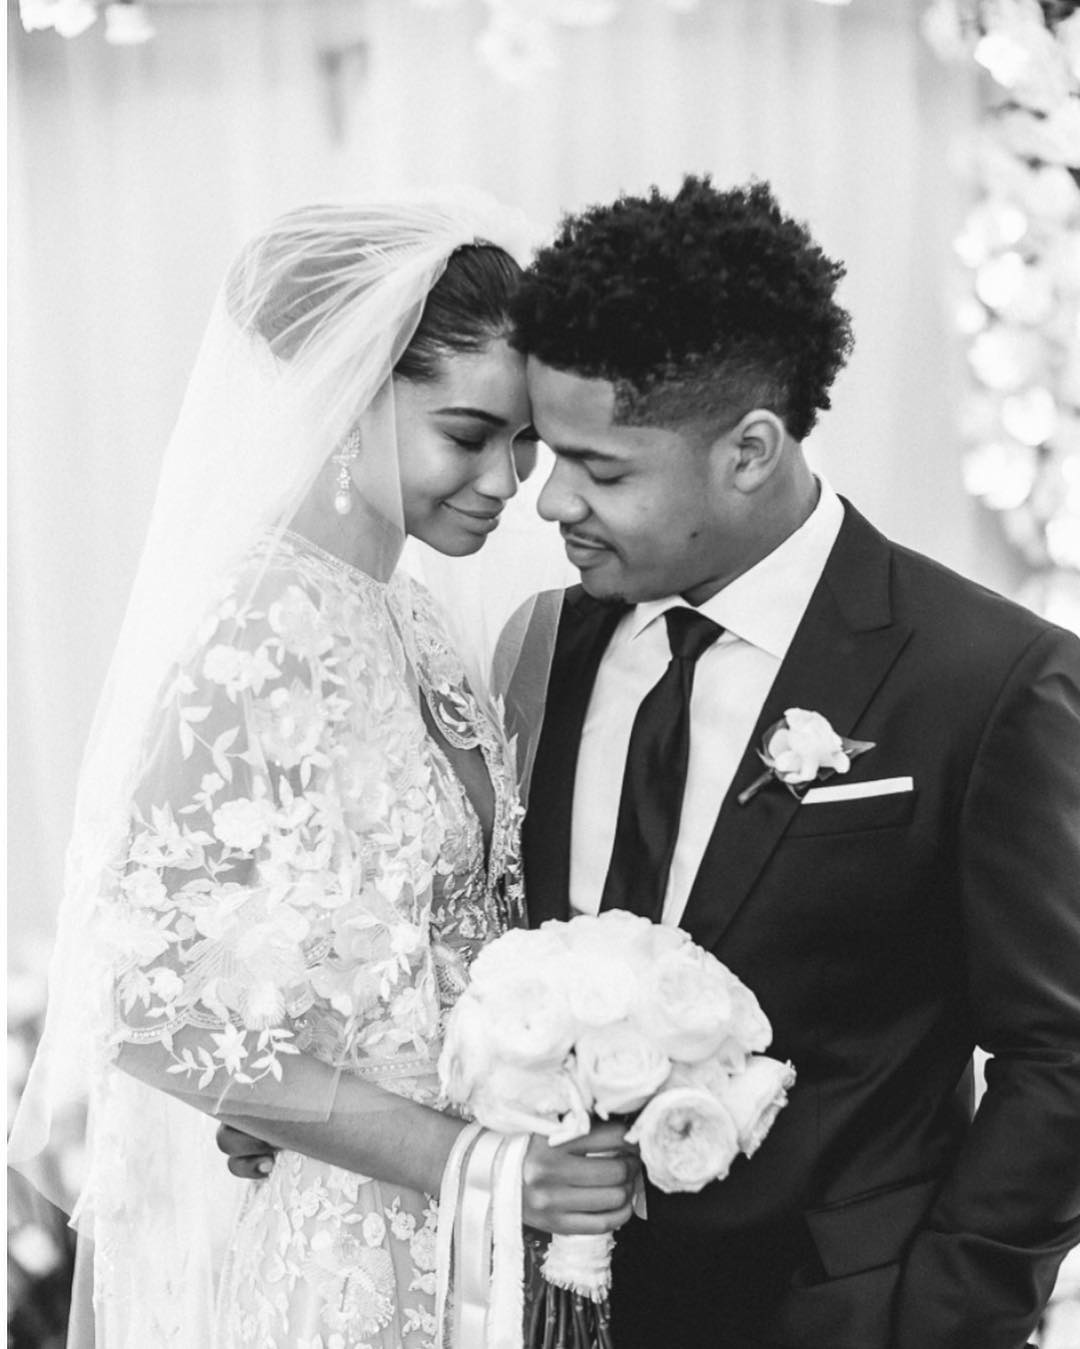 Chanel Iman and Sterling Shepard got married at the Beverly Hills Hotel in Beverly Hills, California .